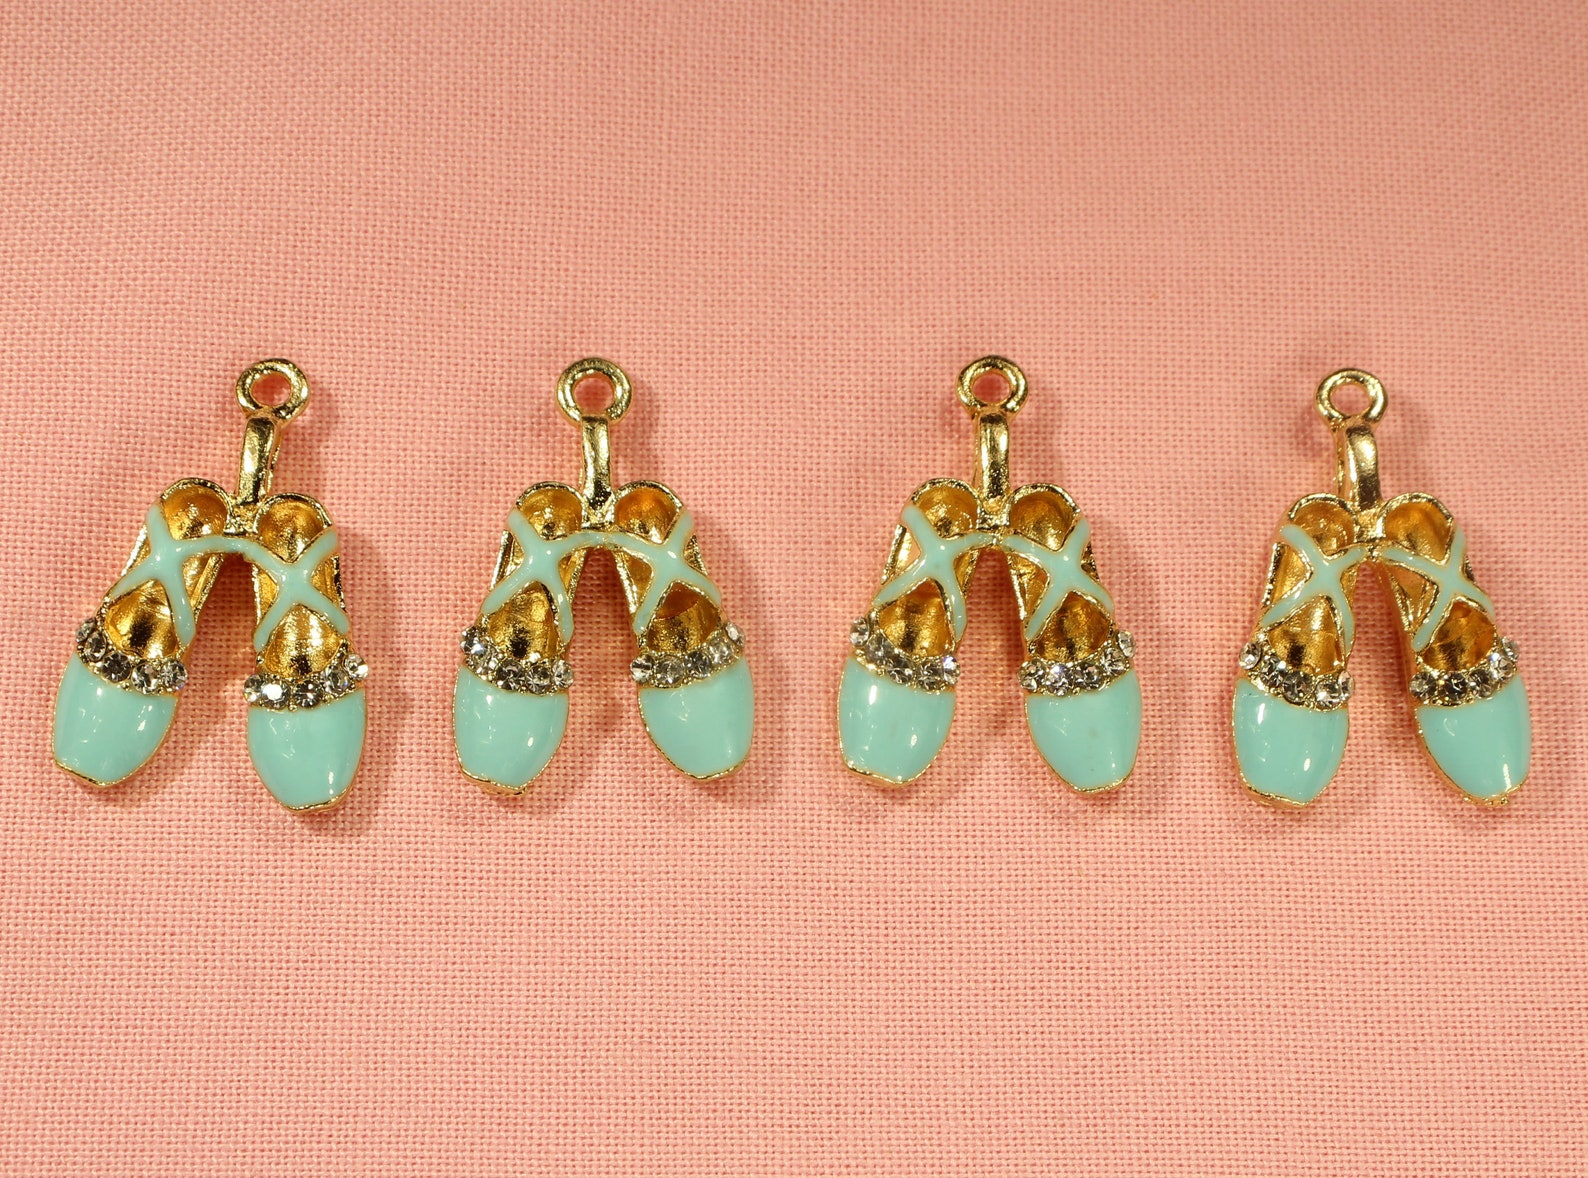 ballet shoes 26mm gold plated, rhinestone and light blue enamel 3d dance charms - 0422